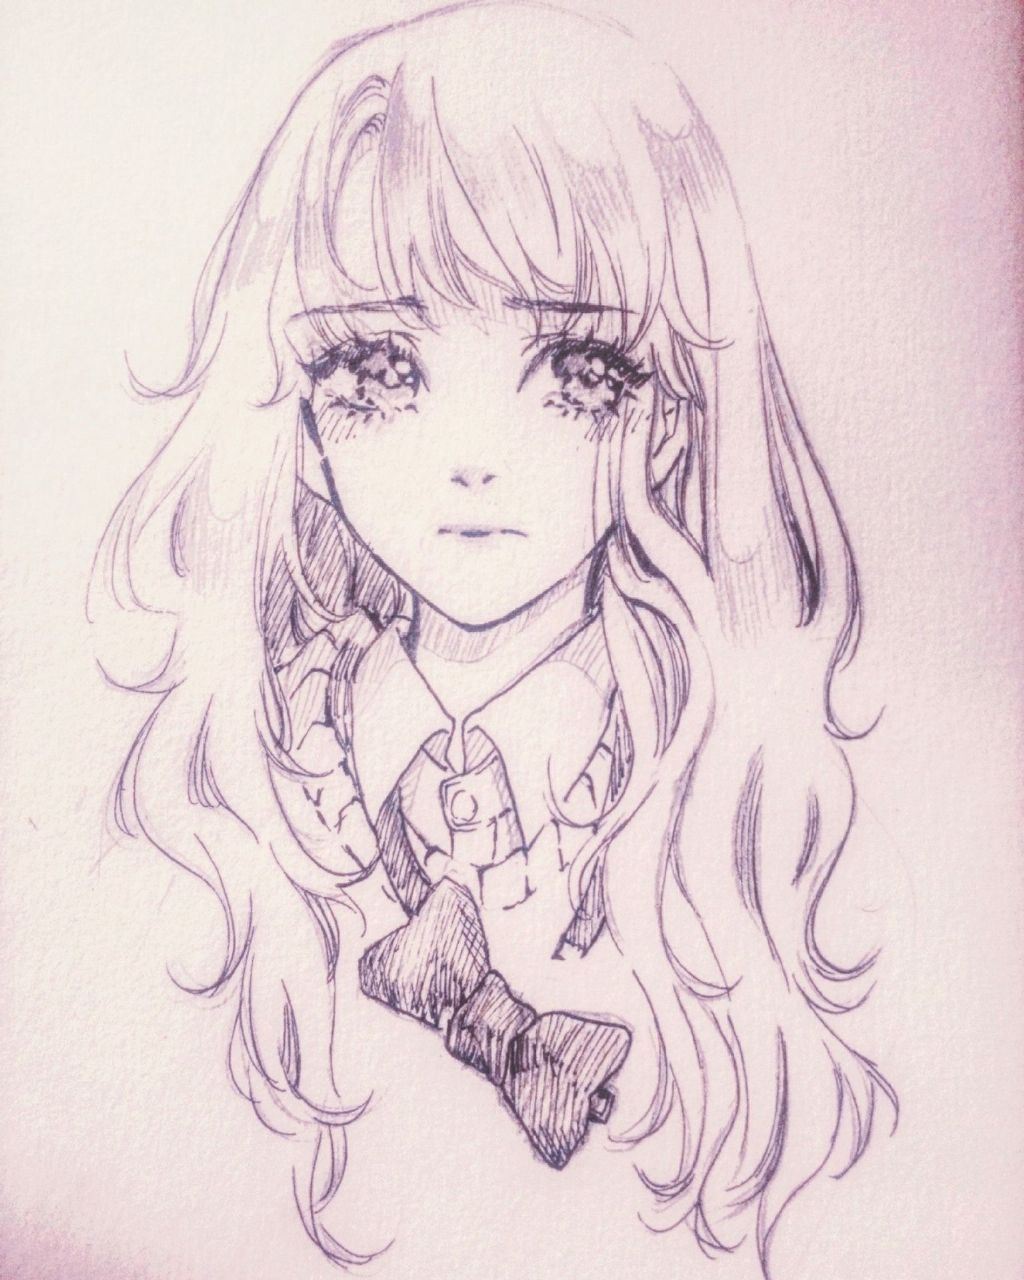 She Has Really Fluffy Open Waved Hair I Do Hope That This Kind Of Hairstyle Fits Me But Nahh Drawing Nhật Ky Nghệ Thuật Mỹ Thuật